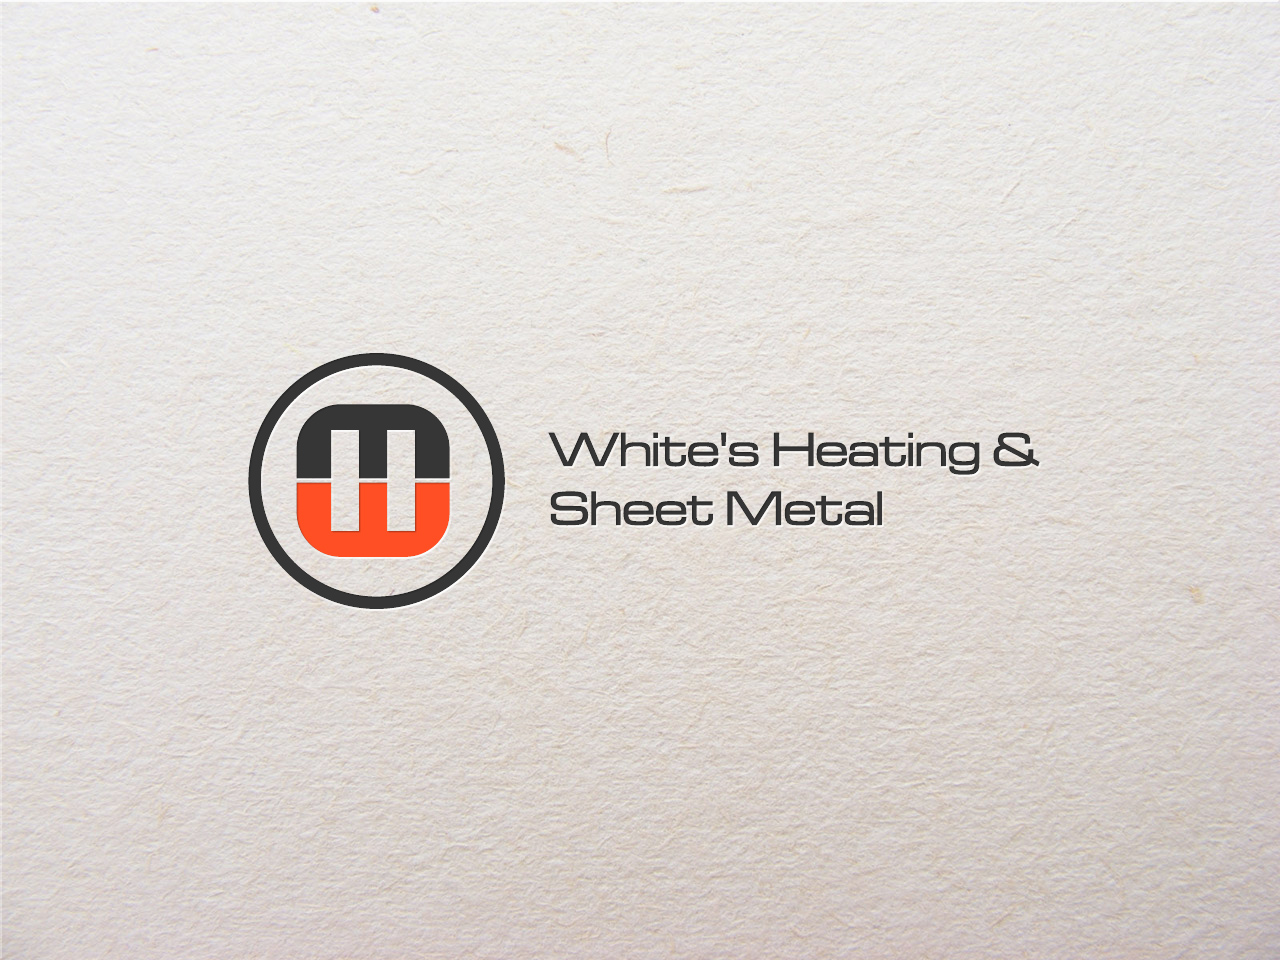 Logo Design by jpbituin - Entry No. 126 in the Logo Design Contest Imaginative Logo Design for White's Heating and Sheet Metal.